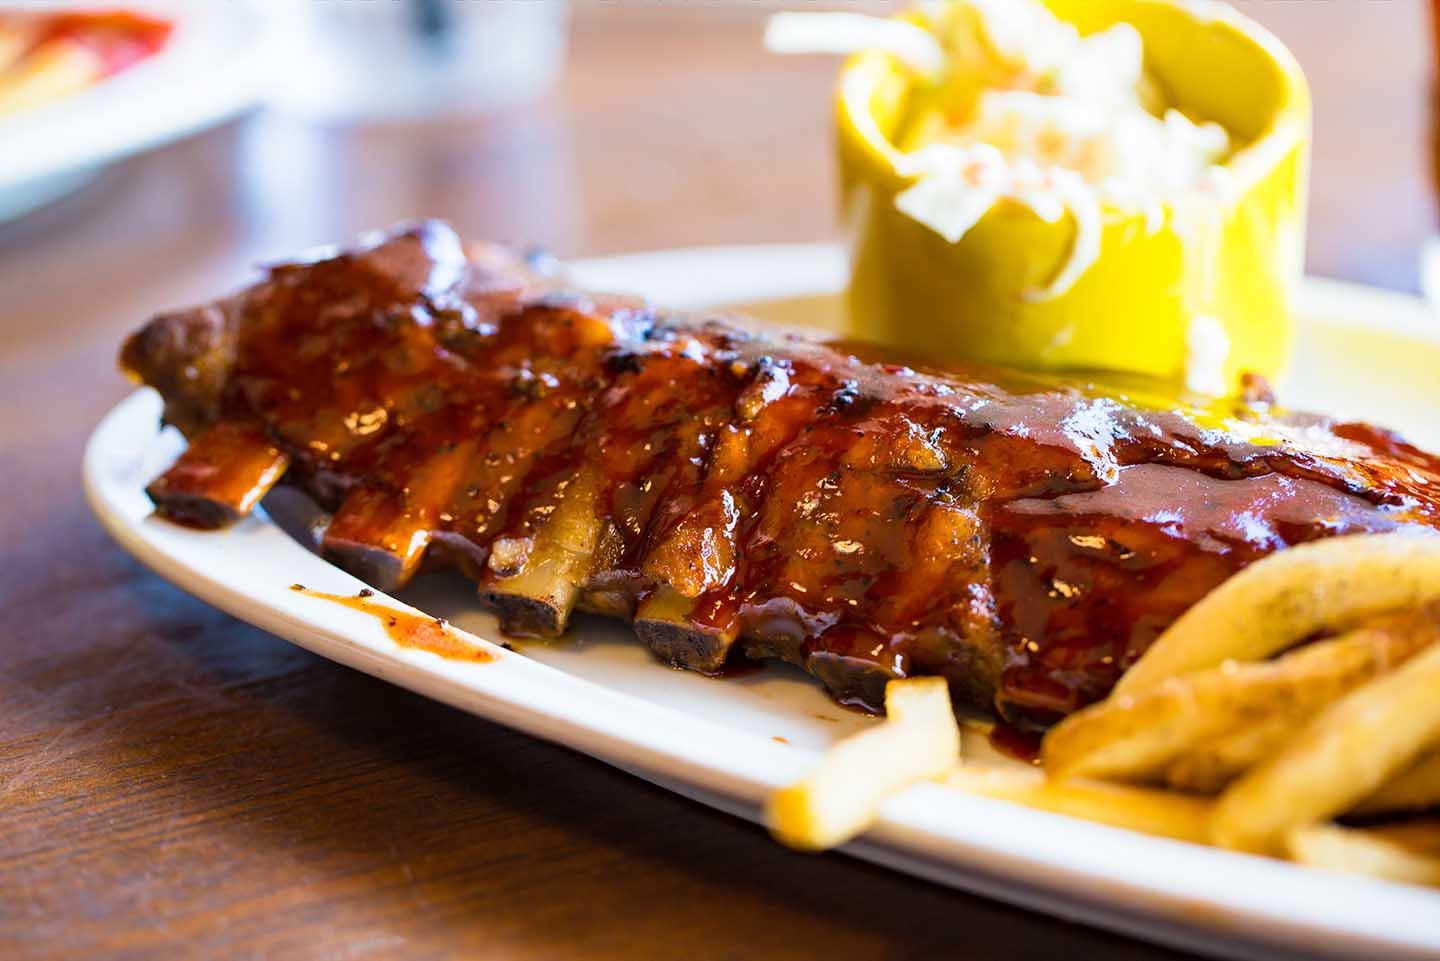 BBQ pork ribs & french fries